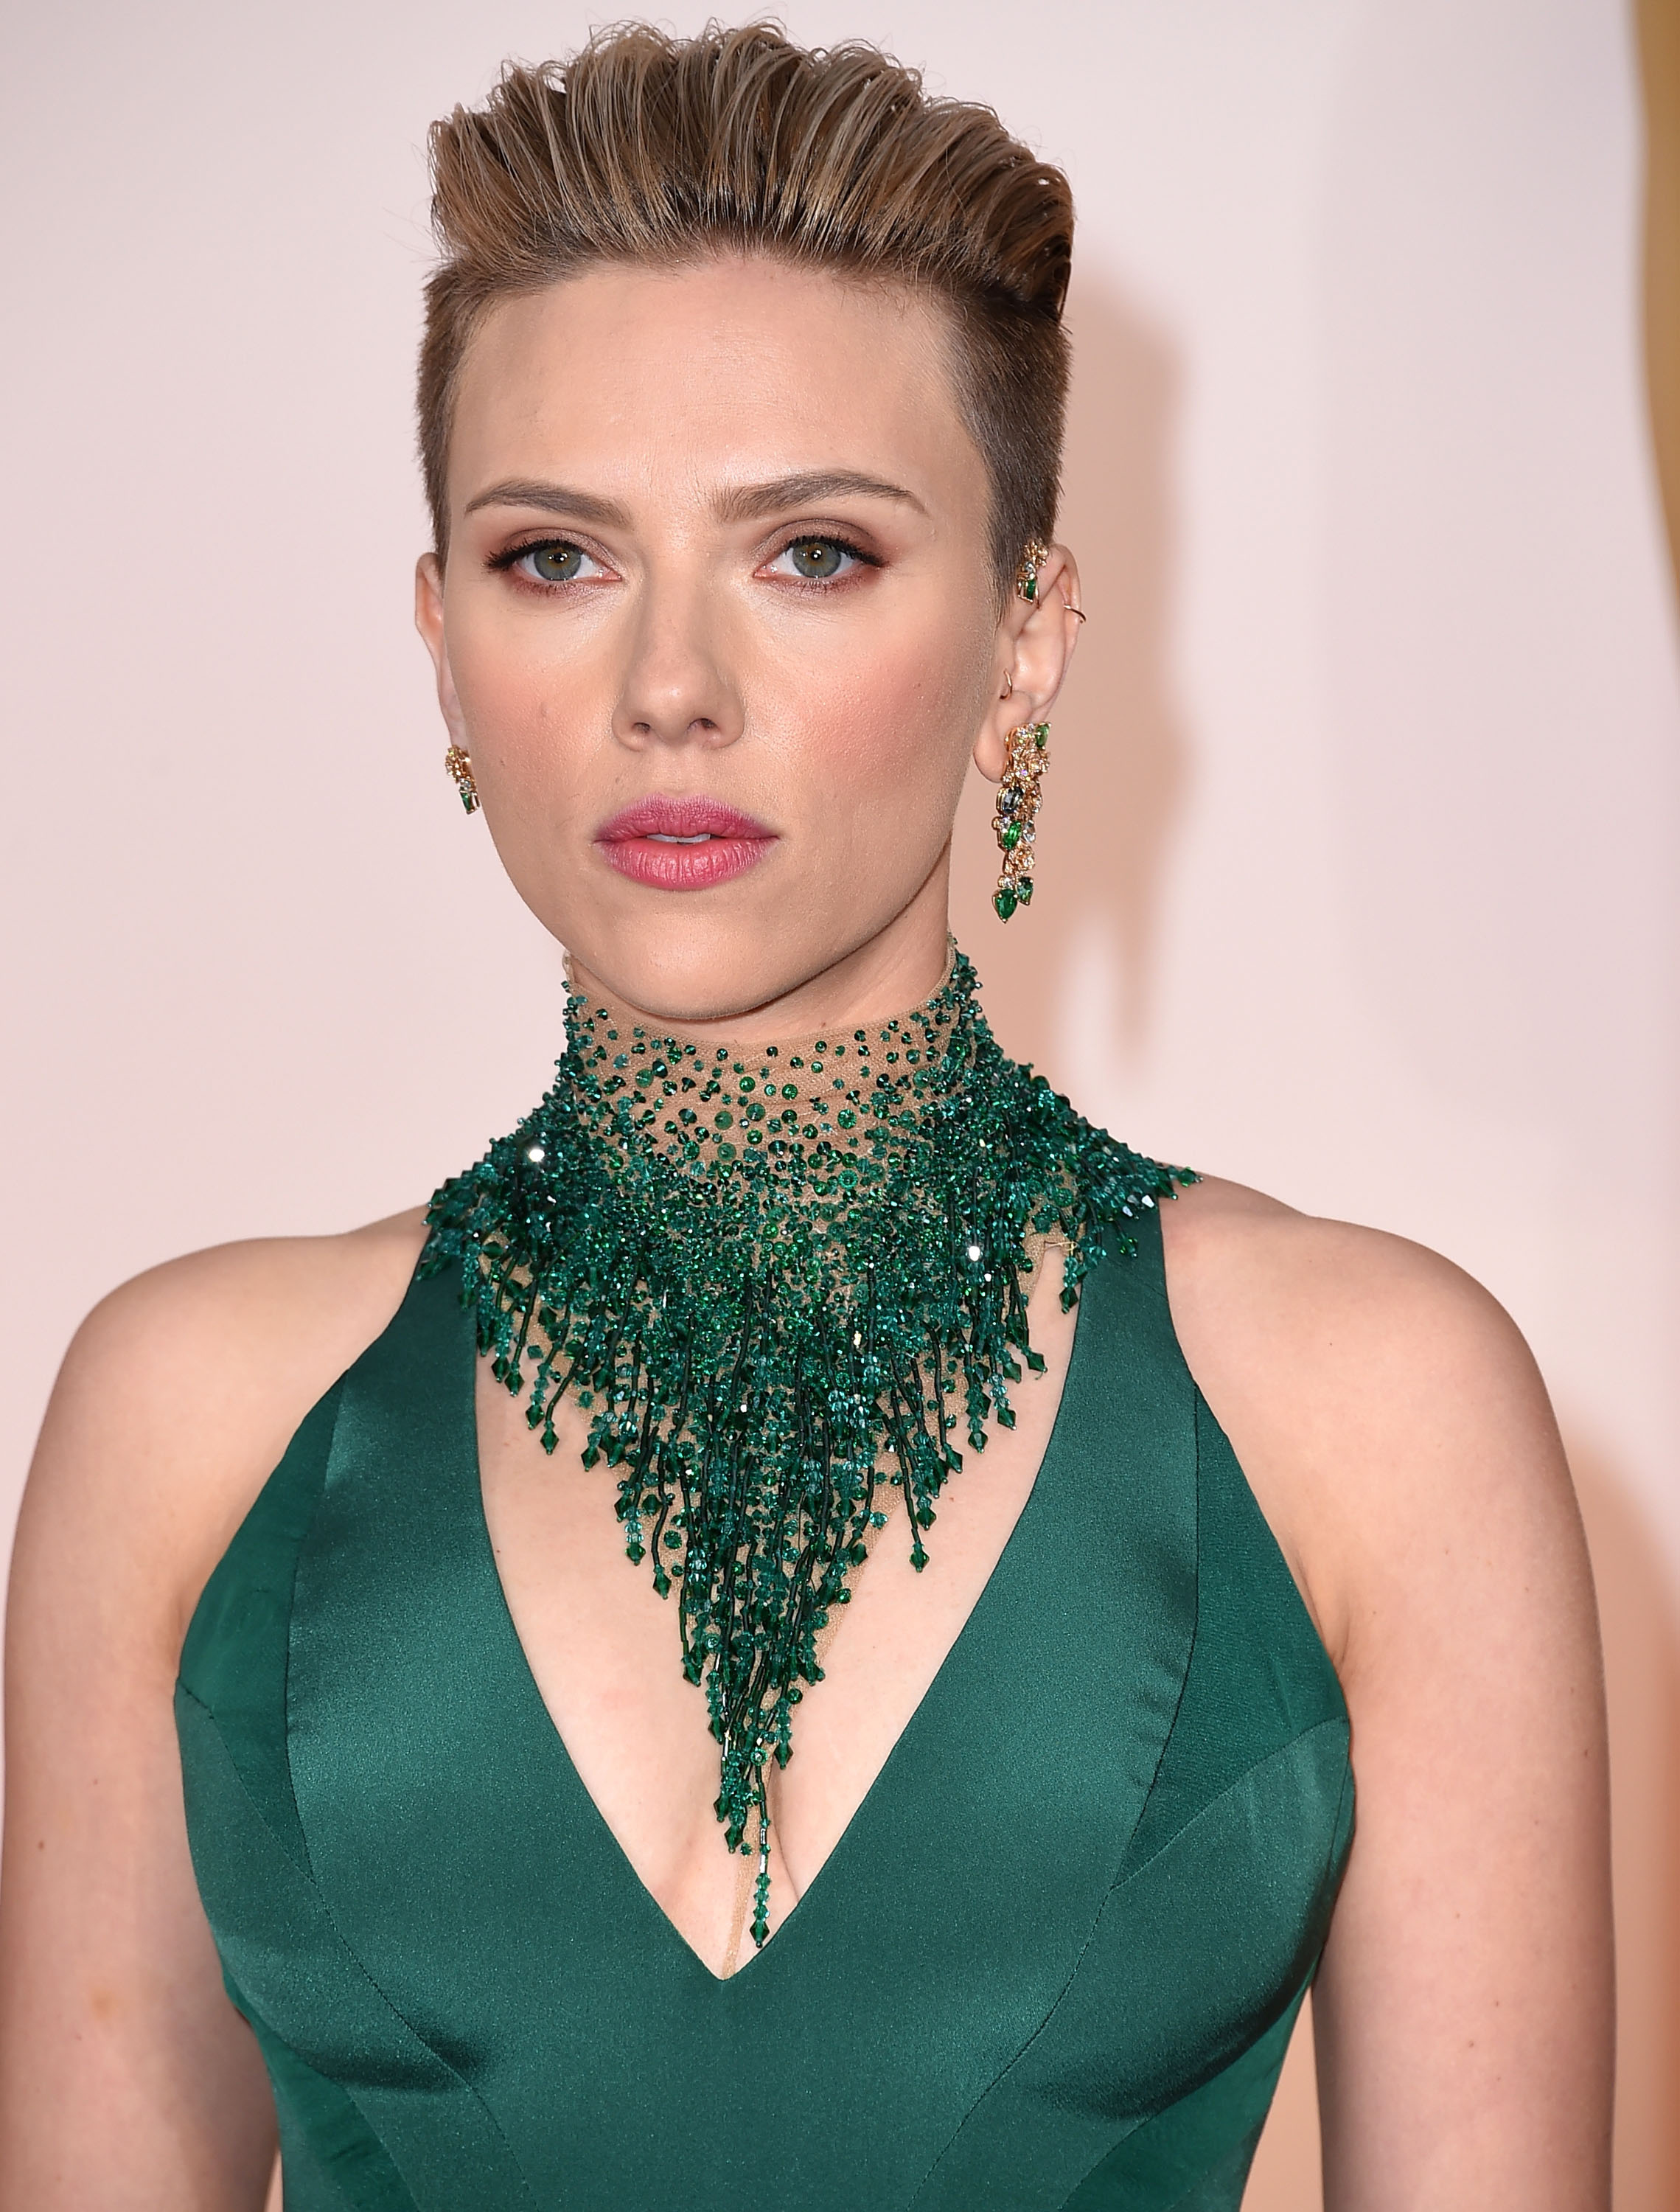 Scarlett Johansson arrives at the 87th Annual Academy Awards at Hollywood & Highland Center on February 22, 2015 in Hollywood, California.  (Photo by Steve Granitz/WireImage)